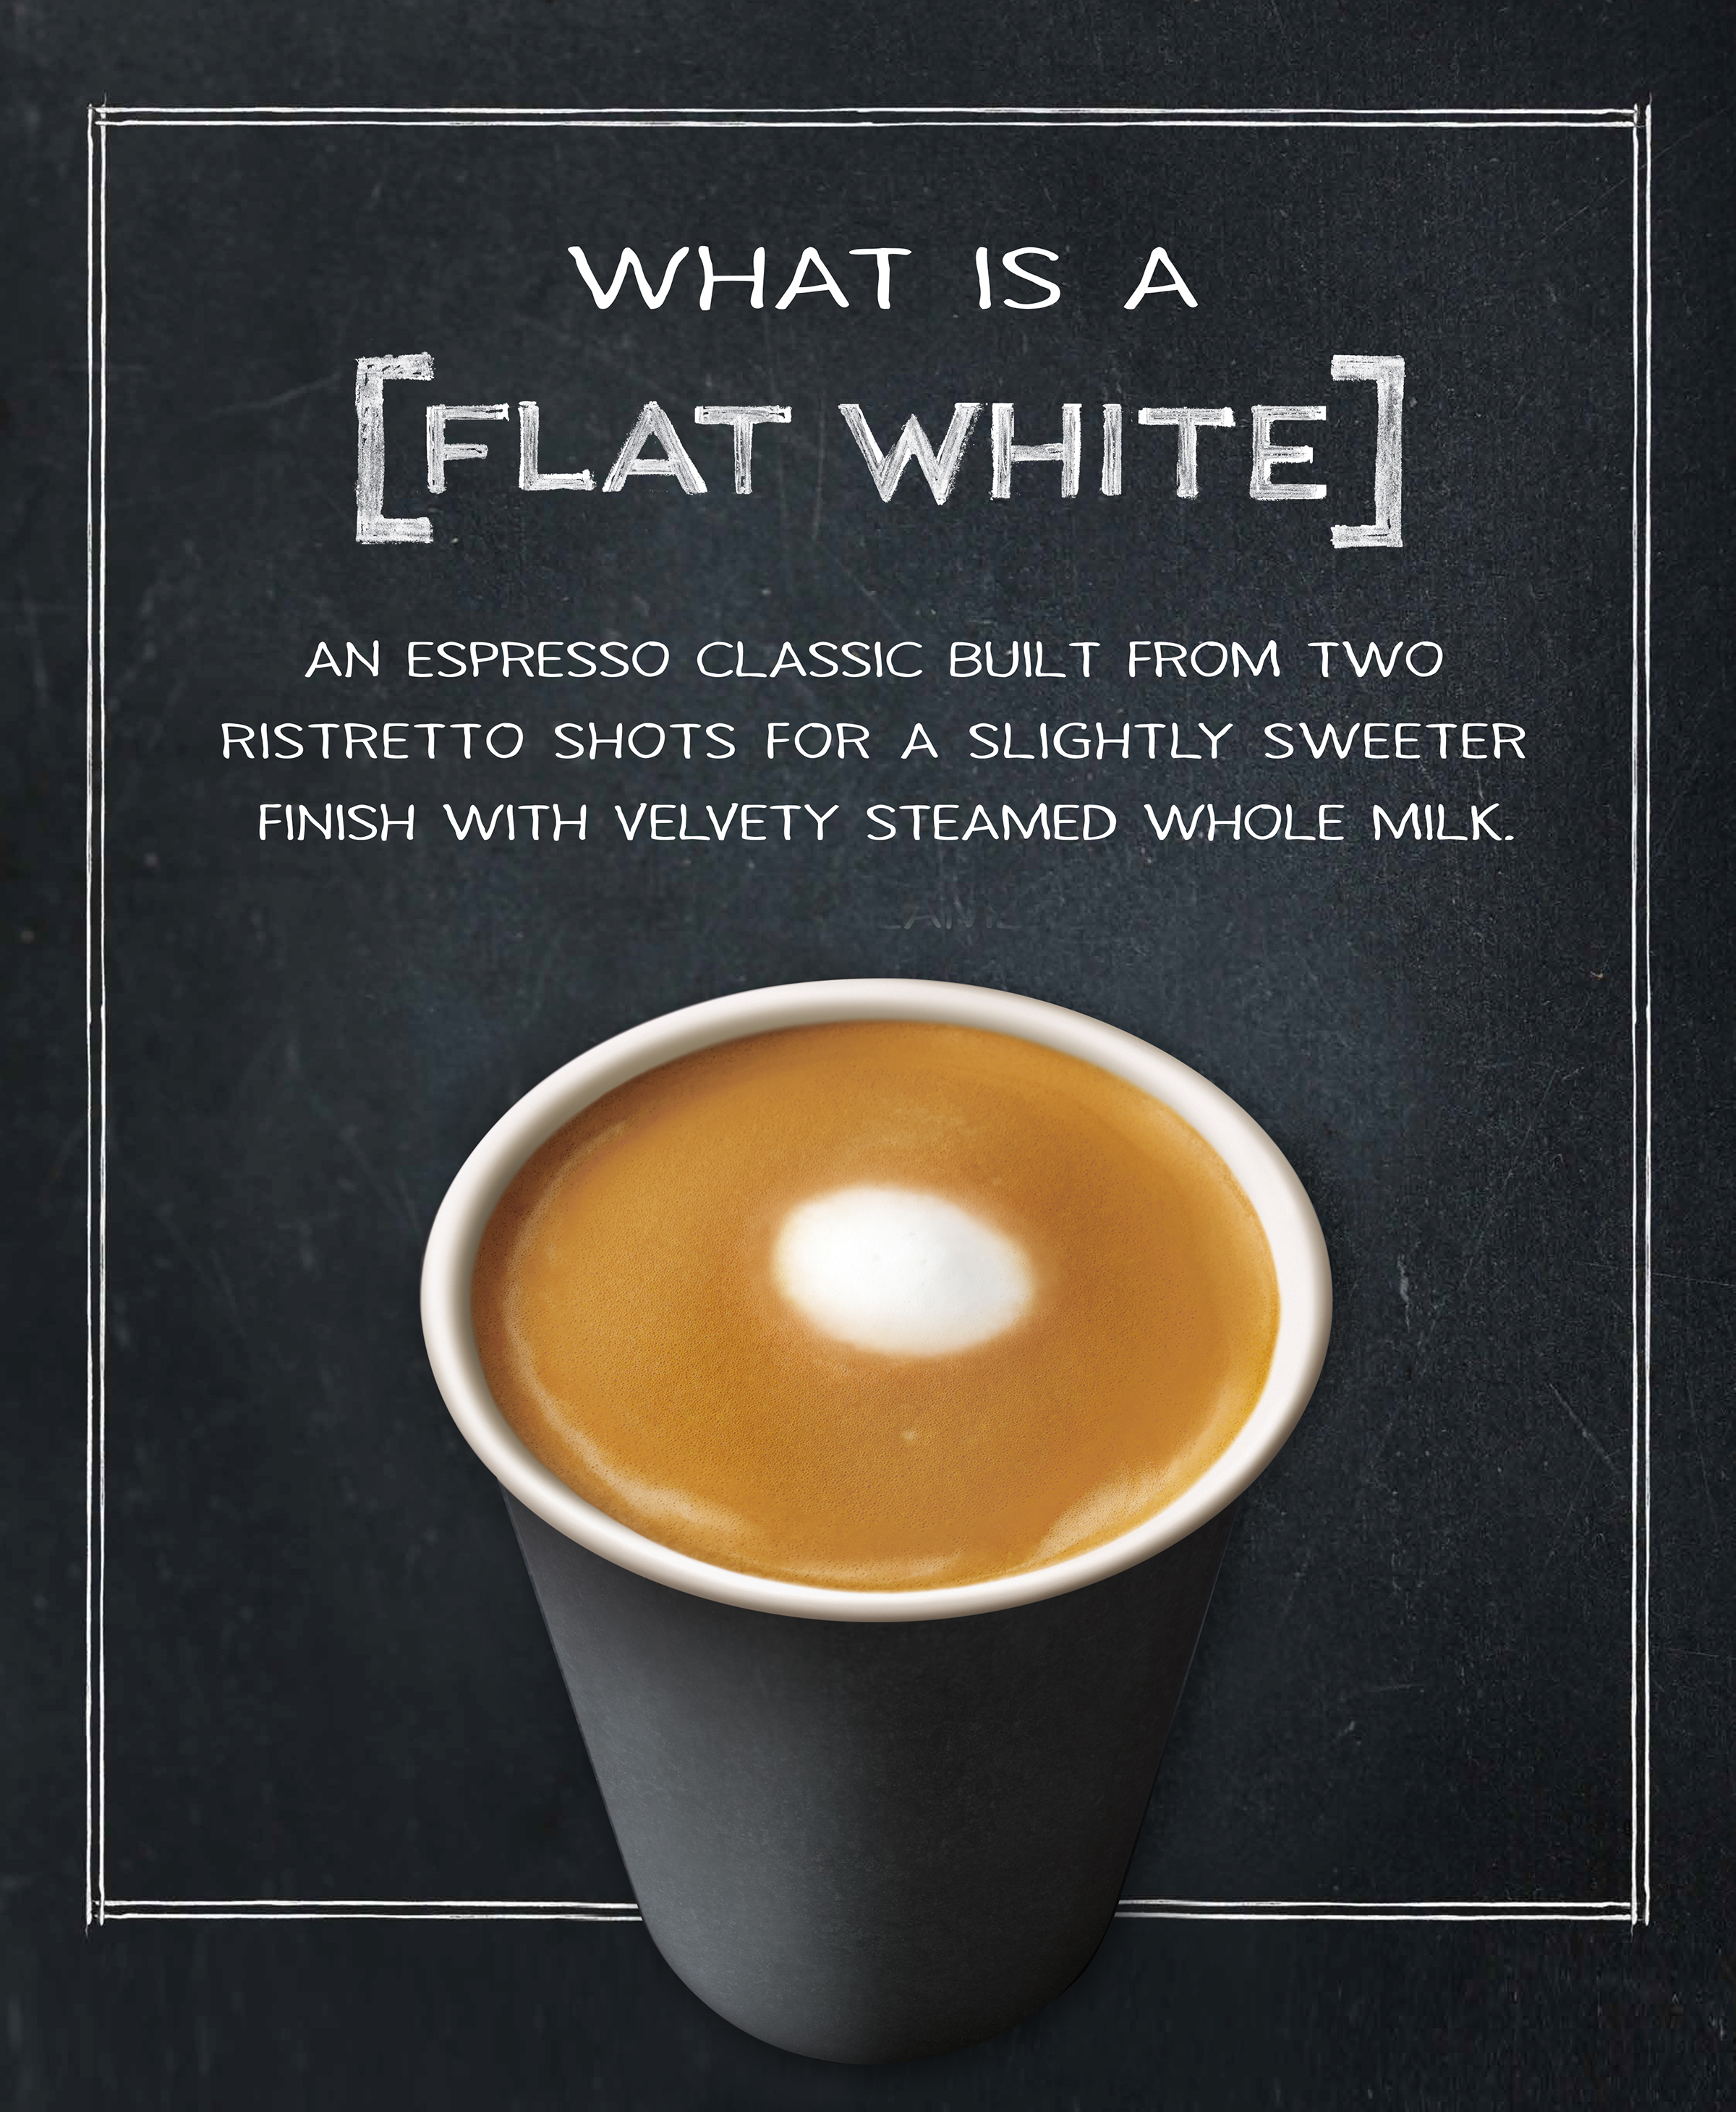 Starbucks Honours Coffee Artistry With New Flat White